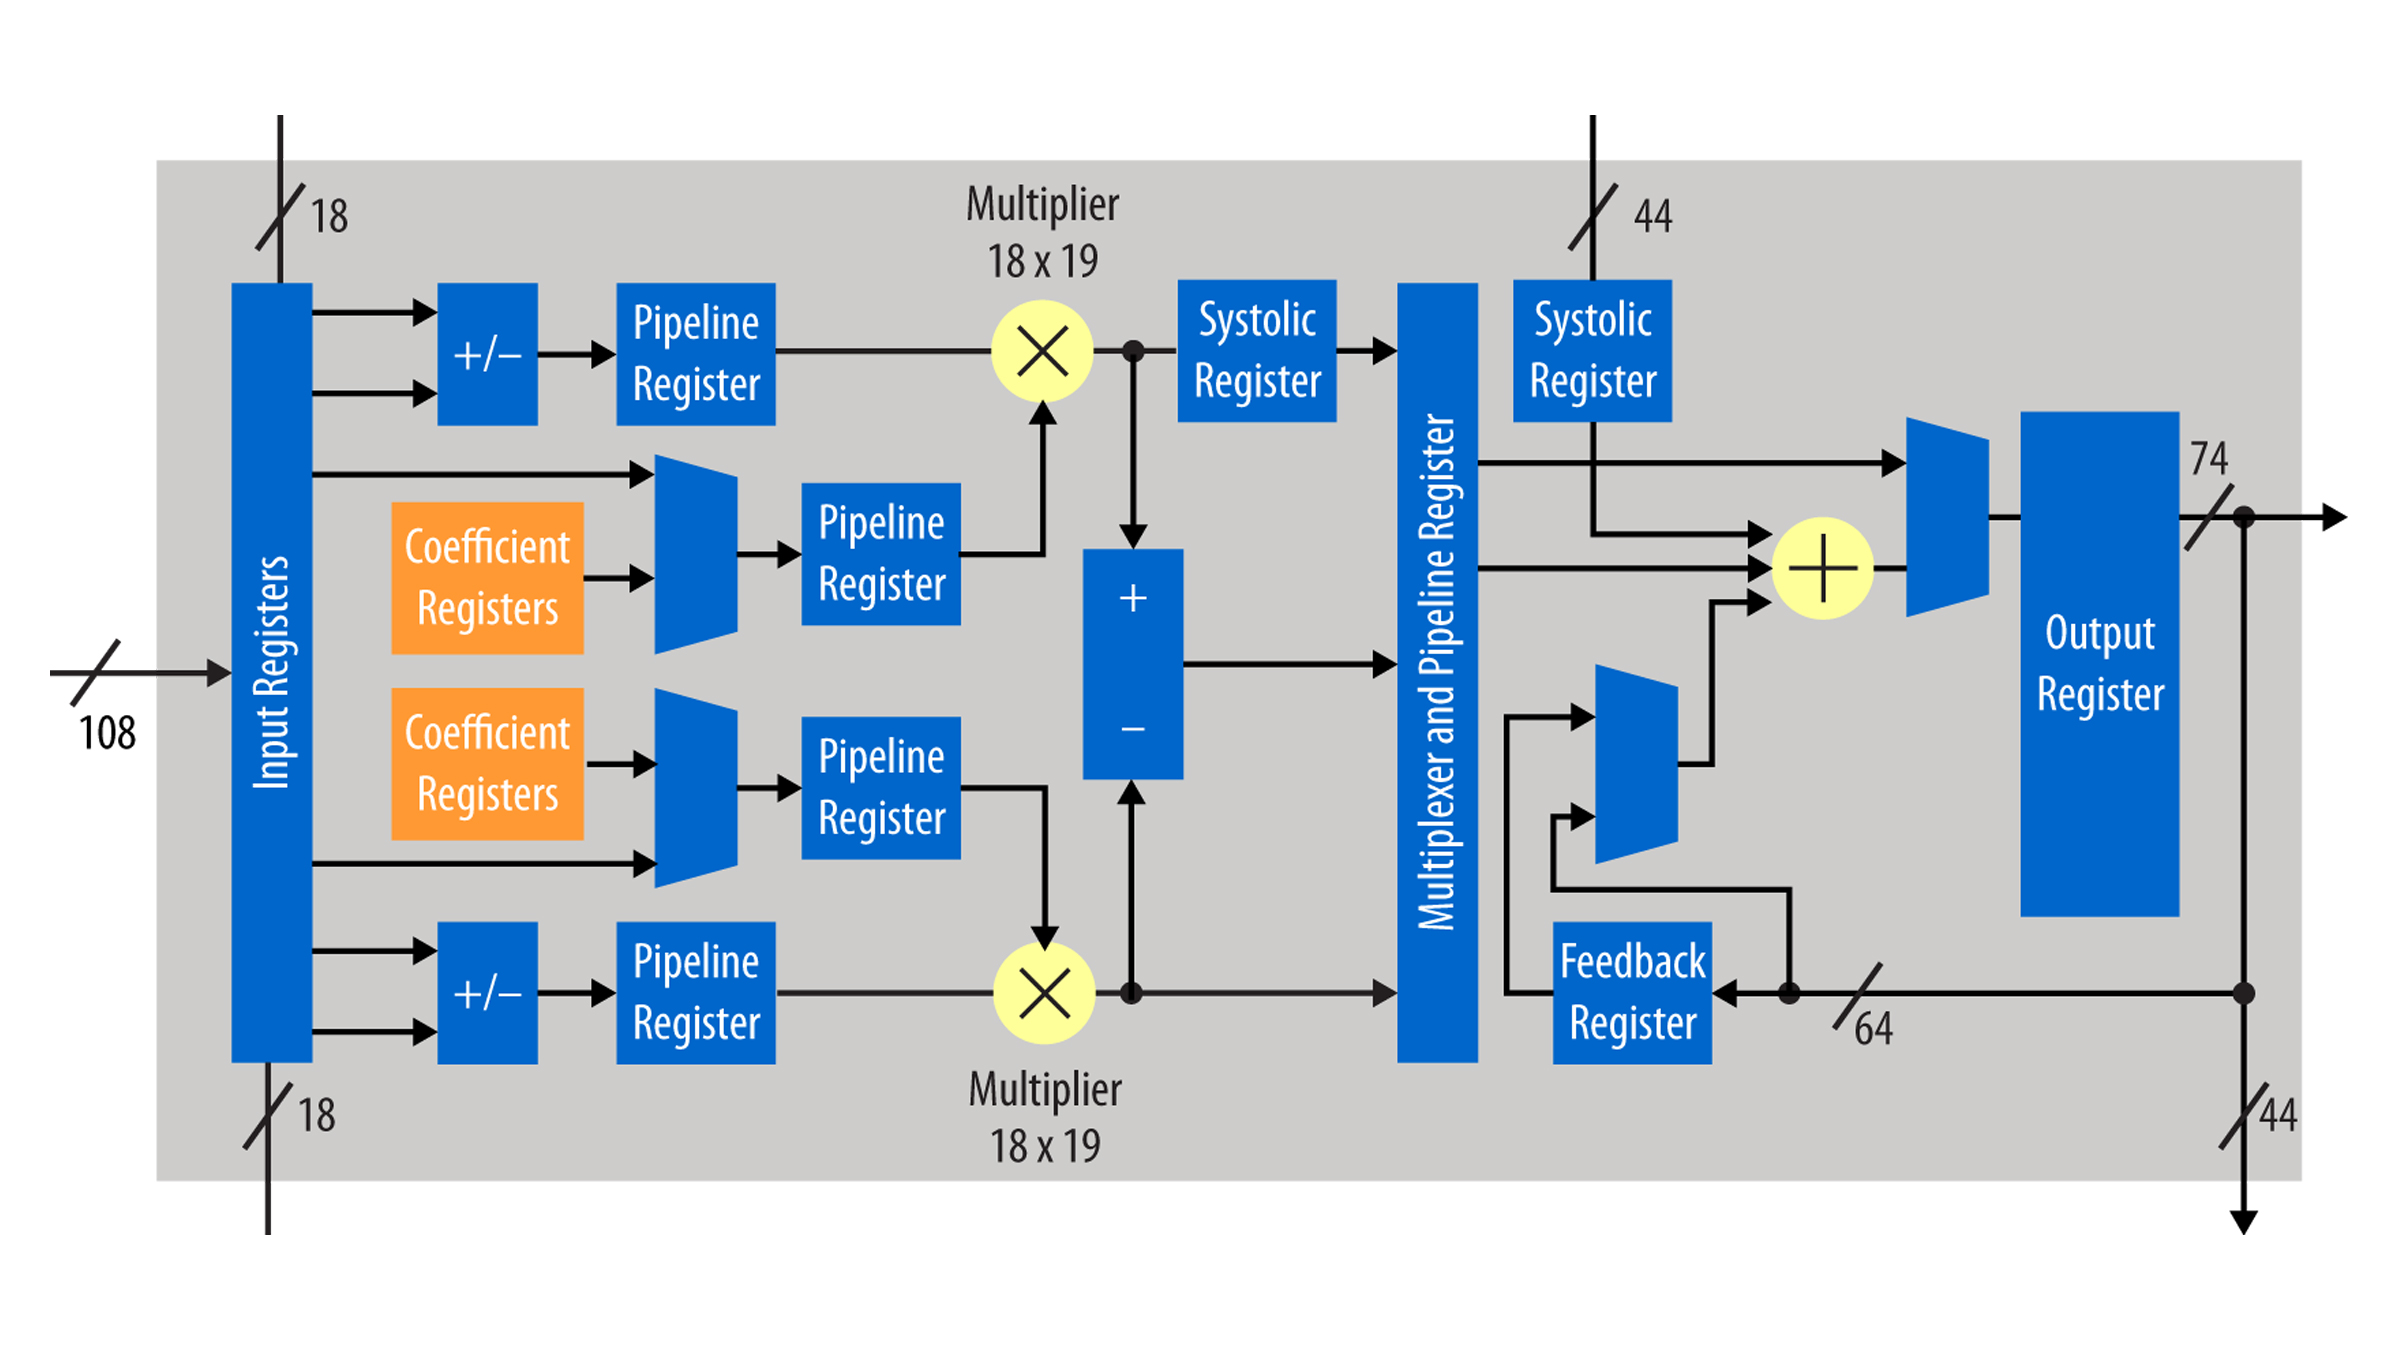 Intel Stratix 10 Fpgas Features Acts As An Output Of The Circuit Click To View Fullsize Picture Full Size